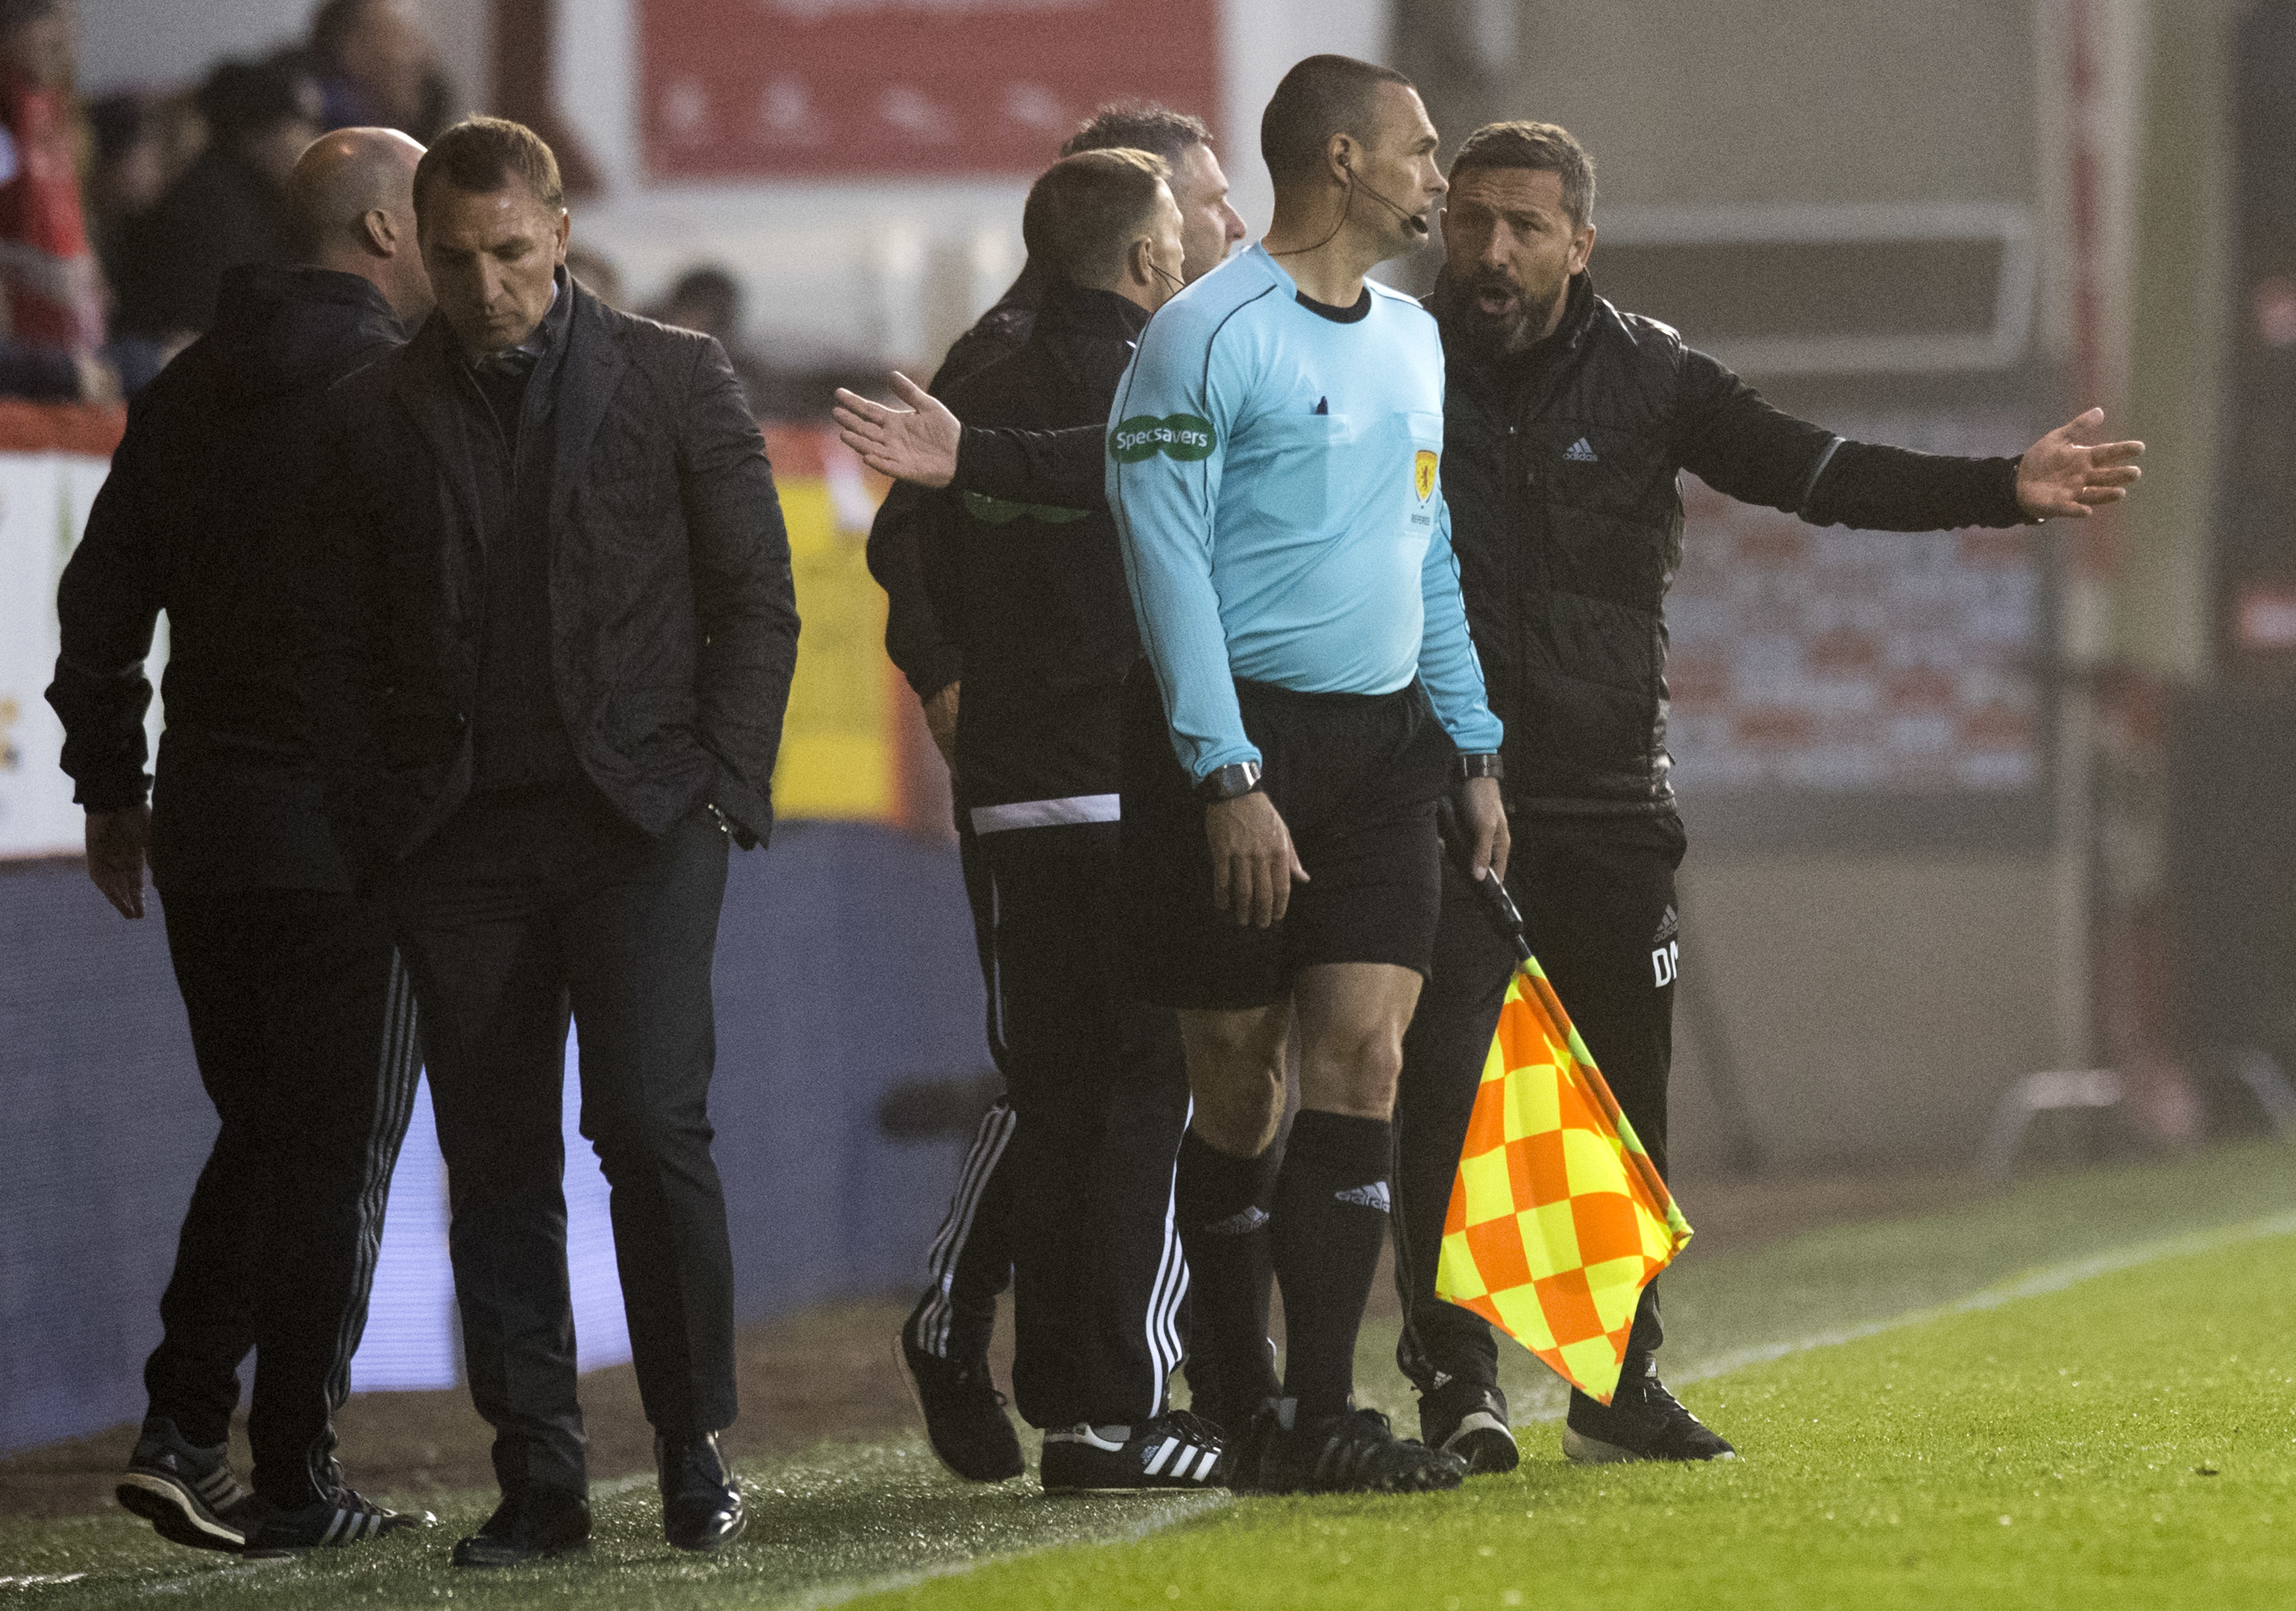 McInnes vents his frustration after being denied a penalty.